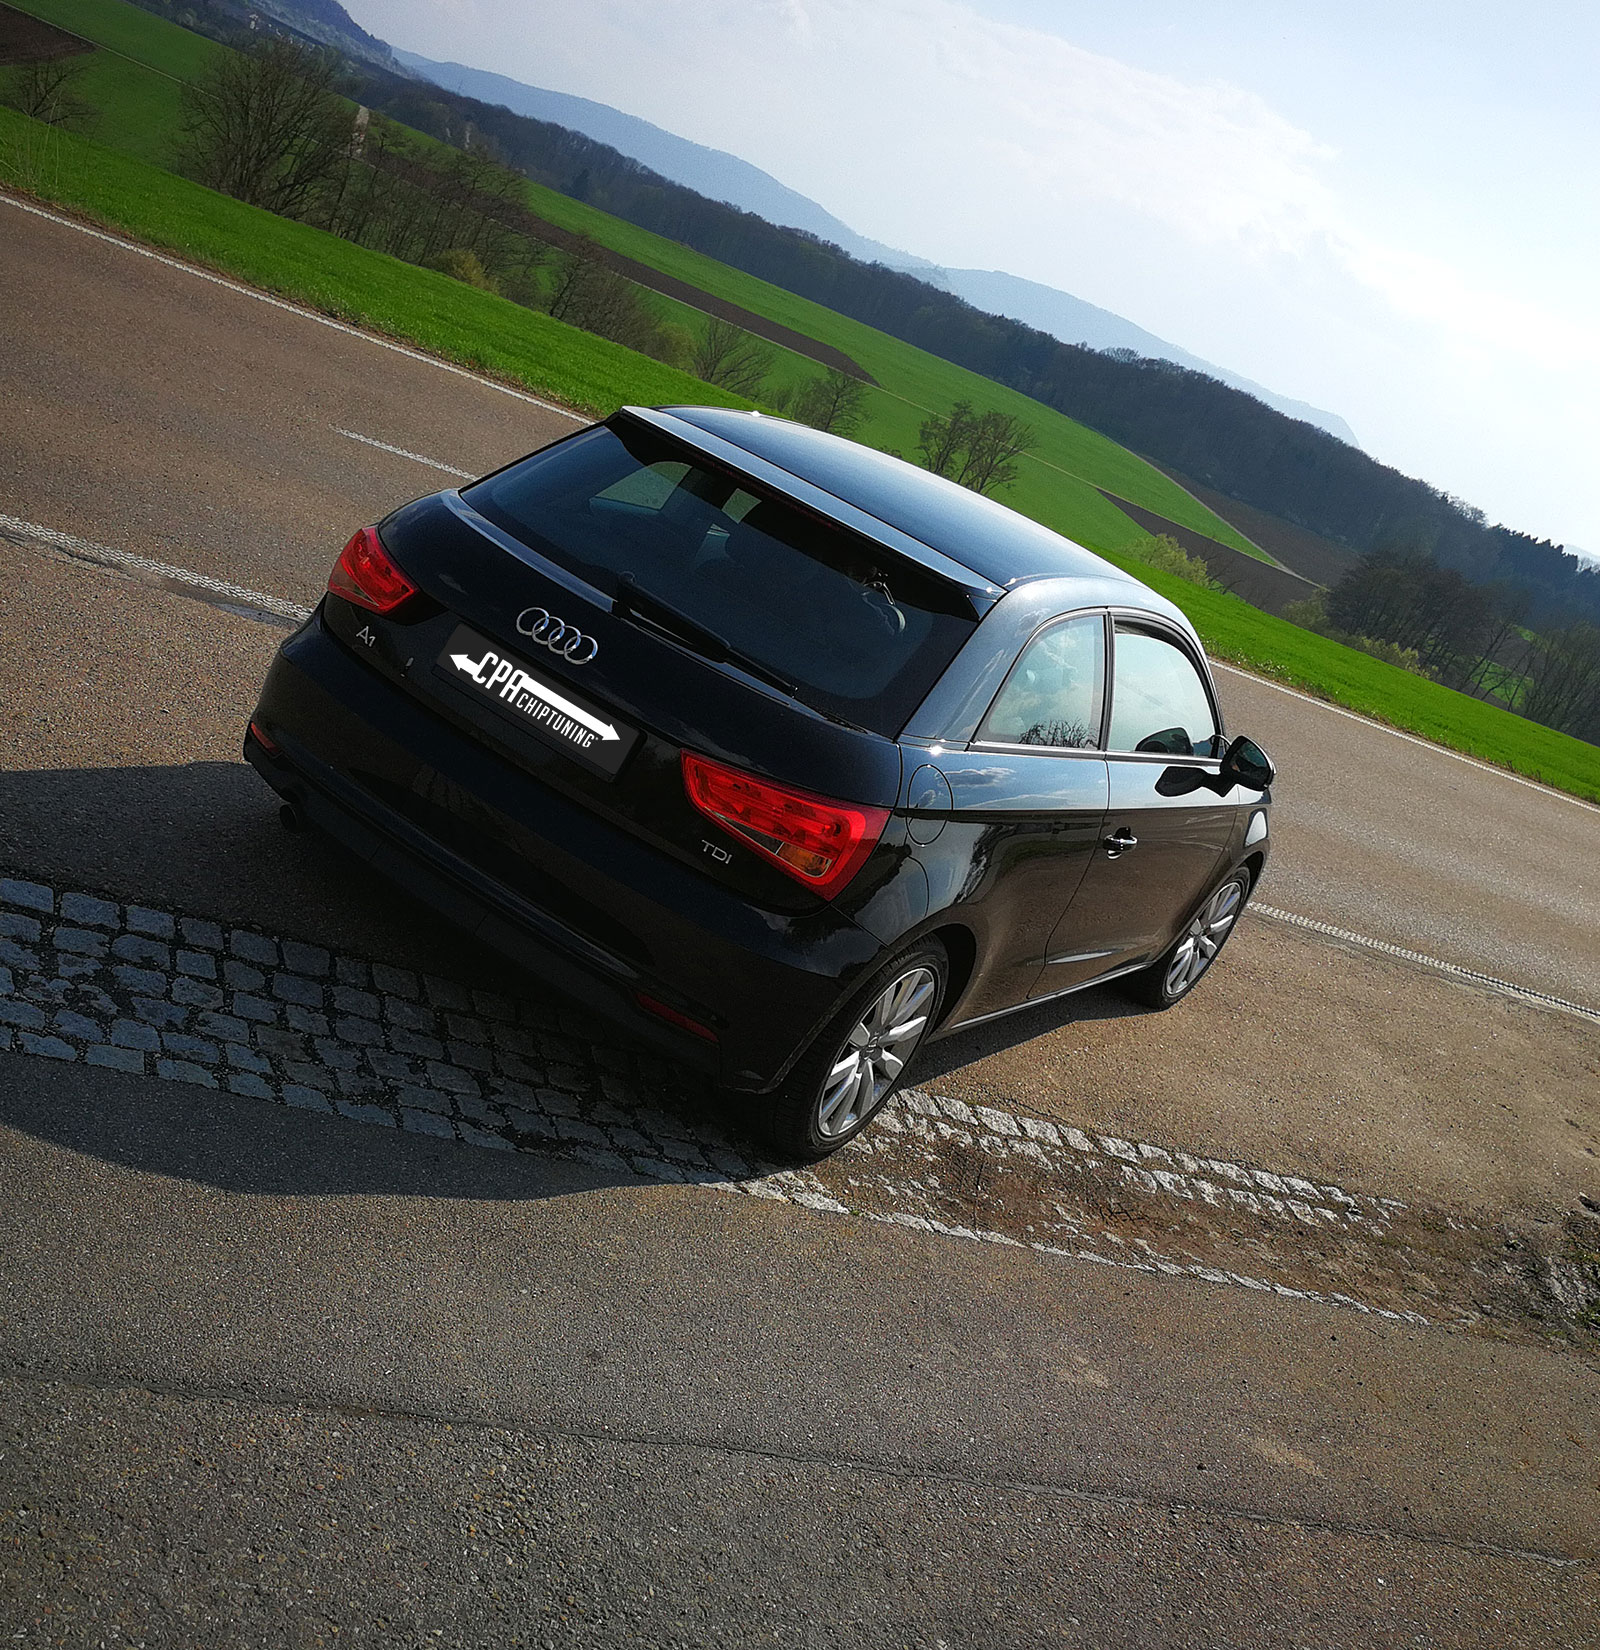 Long-term test: Audi A1 1.4 TDI and CPA Connective System